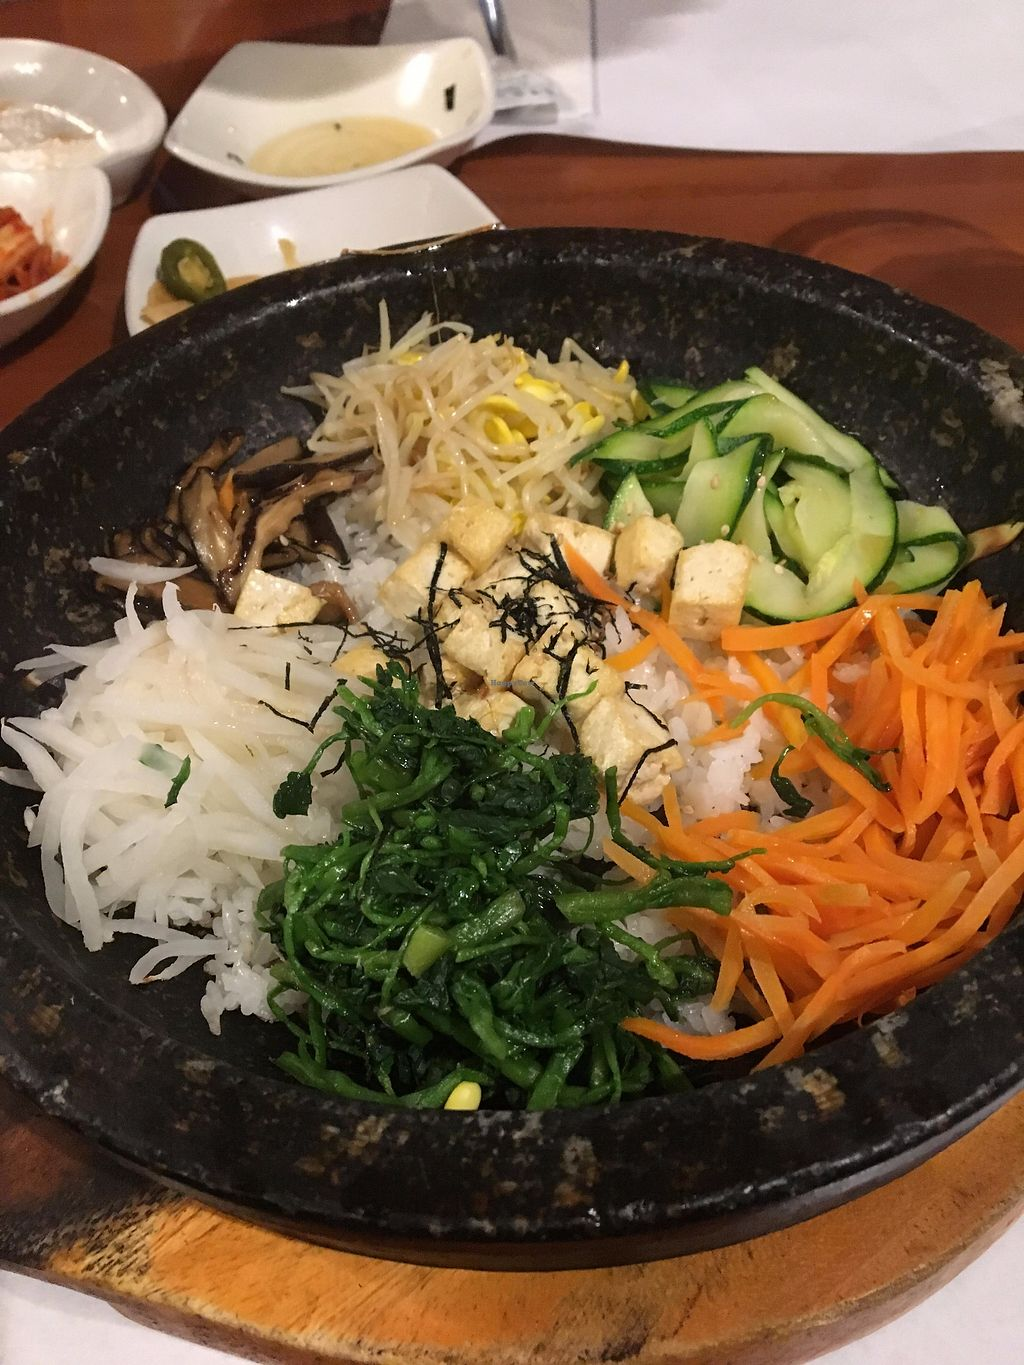 """Photo of Seoul Garden  by <a href=""""/members/profile/EmilySuttonTaylor"""">EmilySuttonTaylor</a> <br/>Tofu Bibimbap with no egg <br/> September 24, 2017  - <a href='/contact/abuse/image/101652/307981'>Report</a>"""